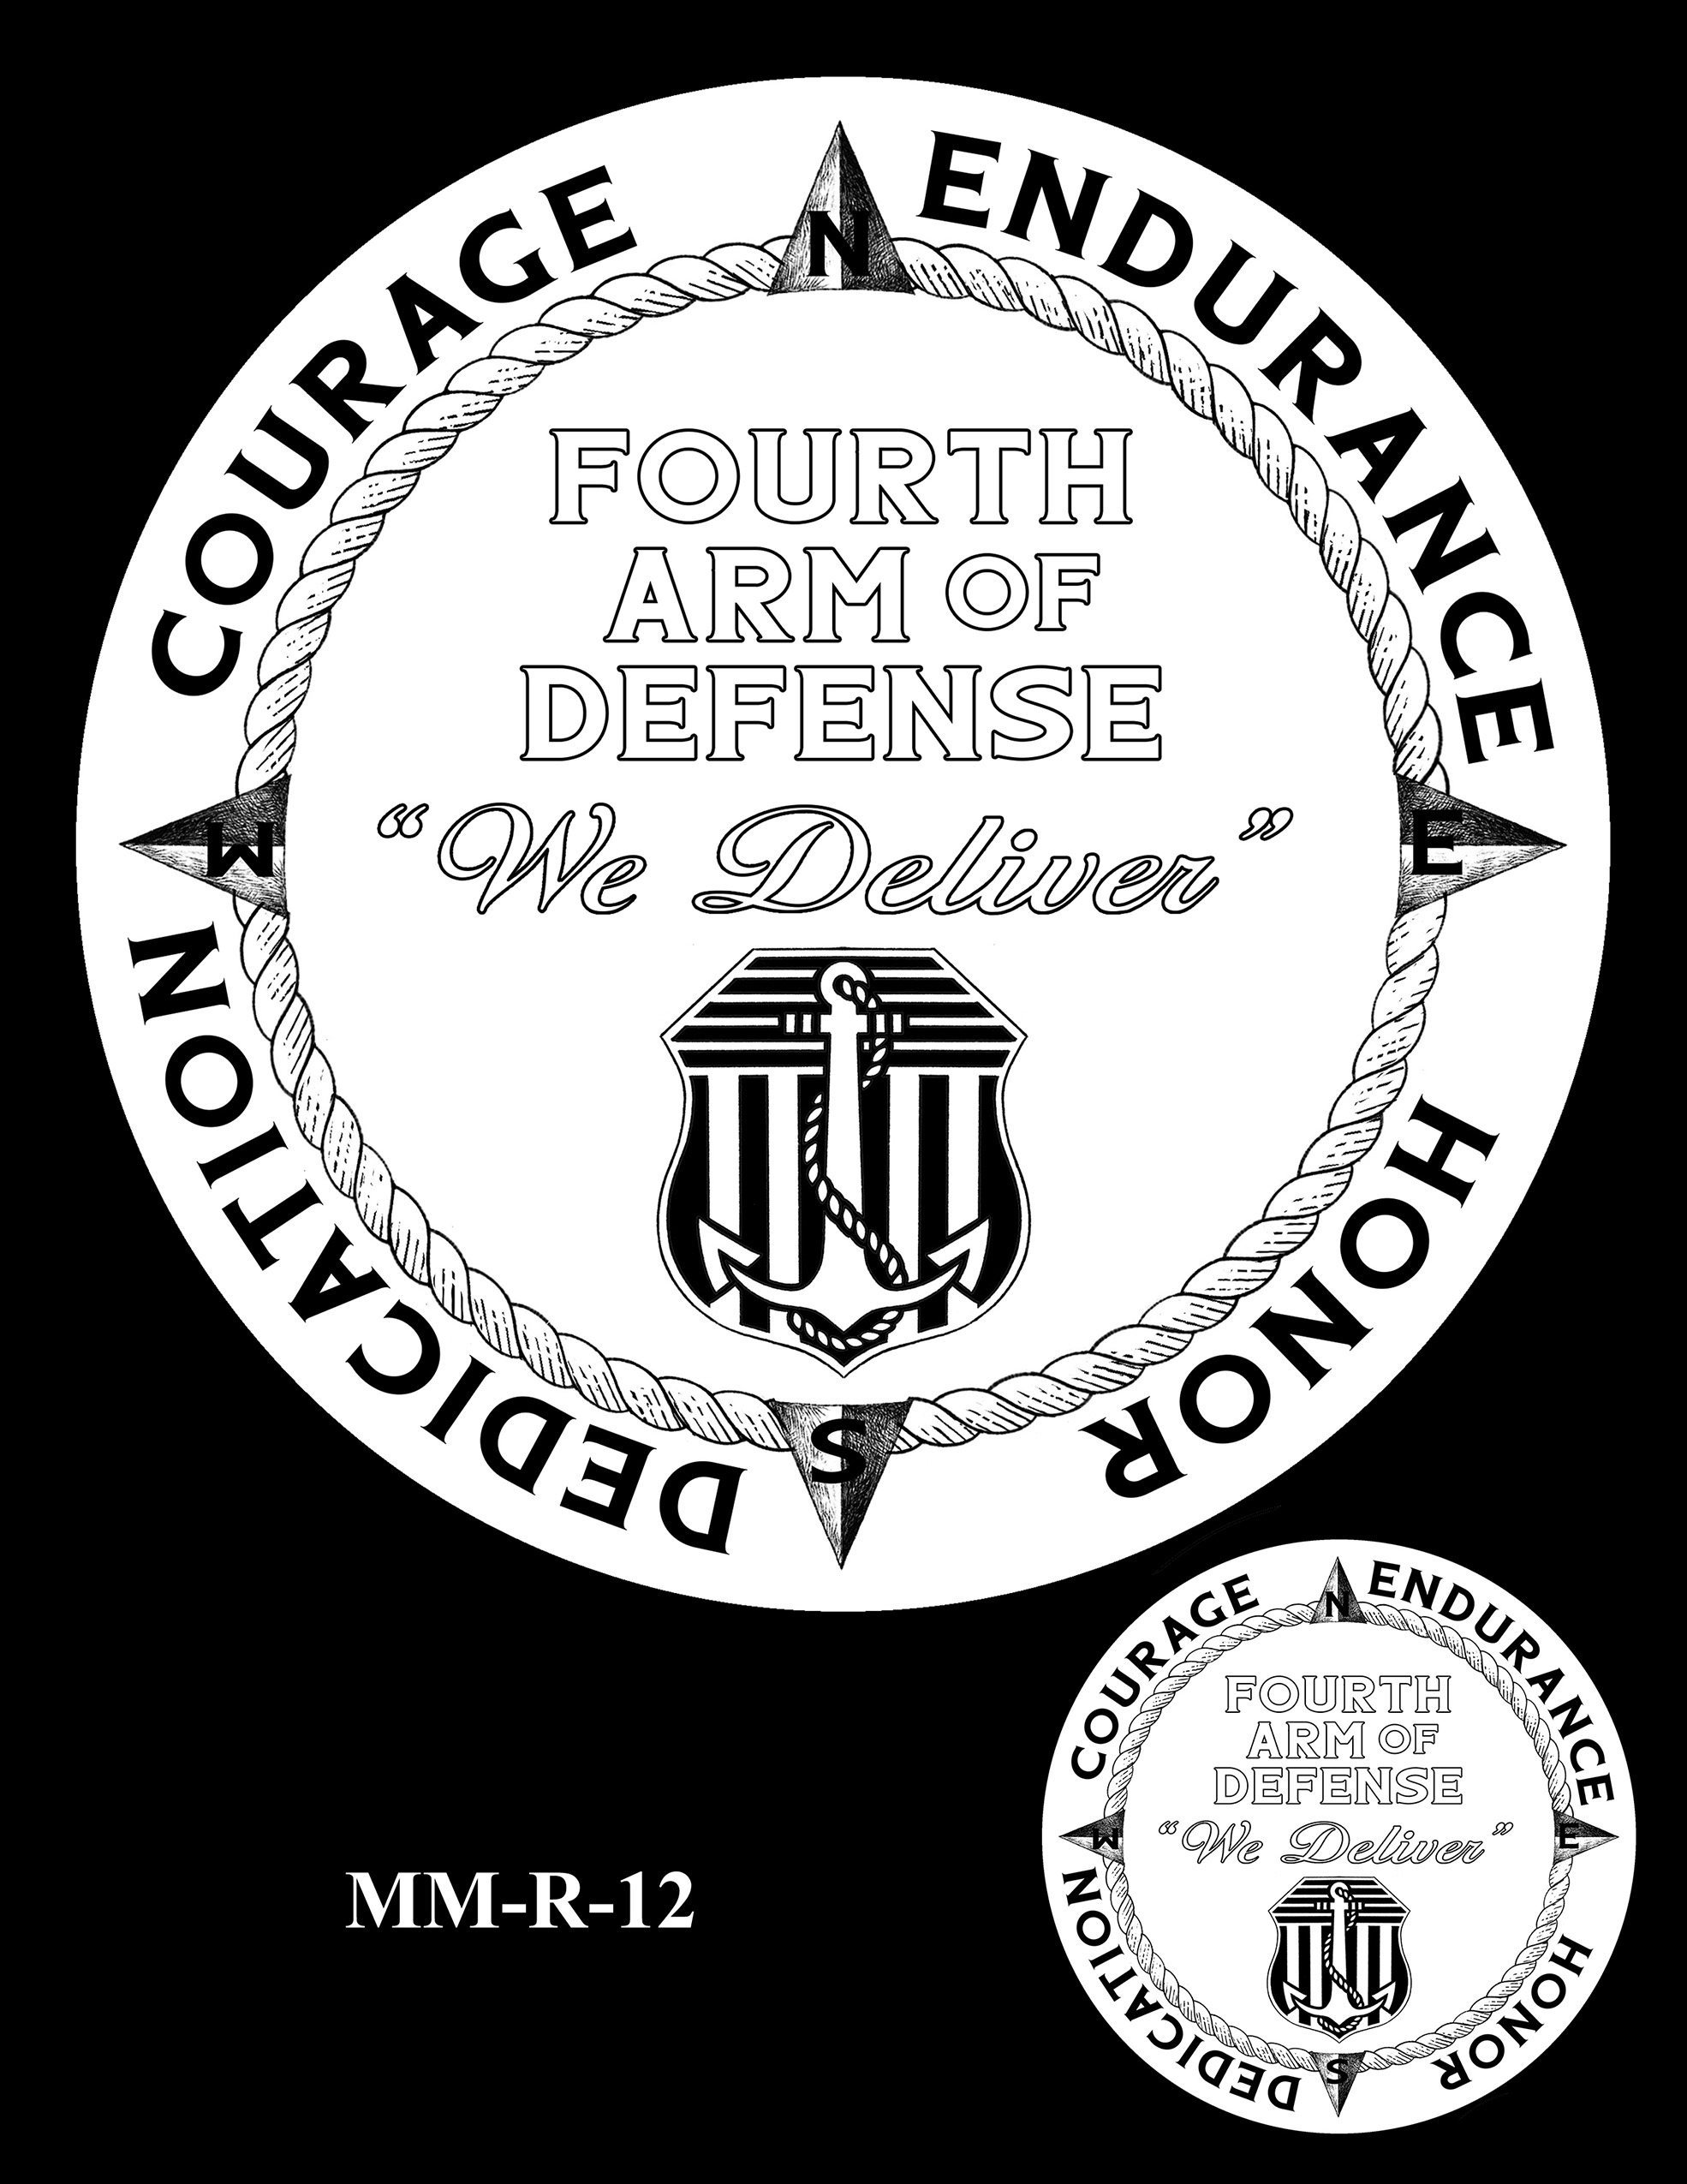 MM-R-12 -- Merchant Mariners of World War II Congressional Gold Medal